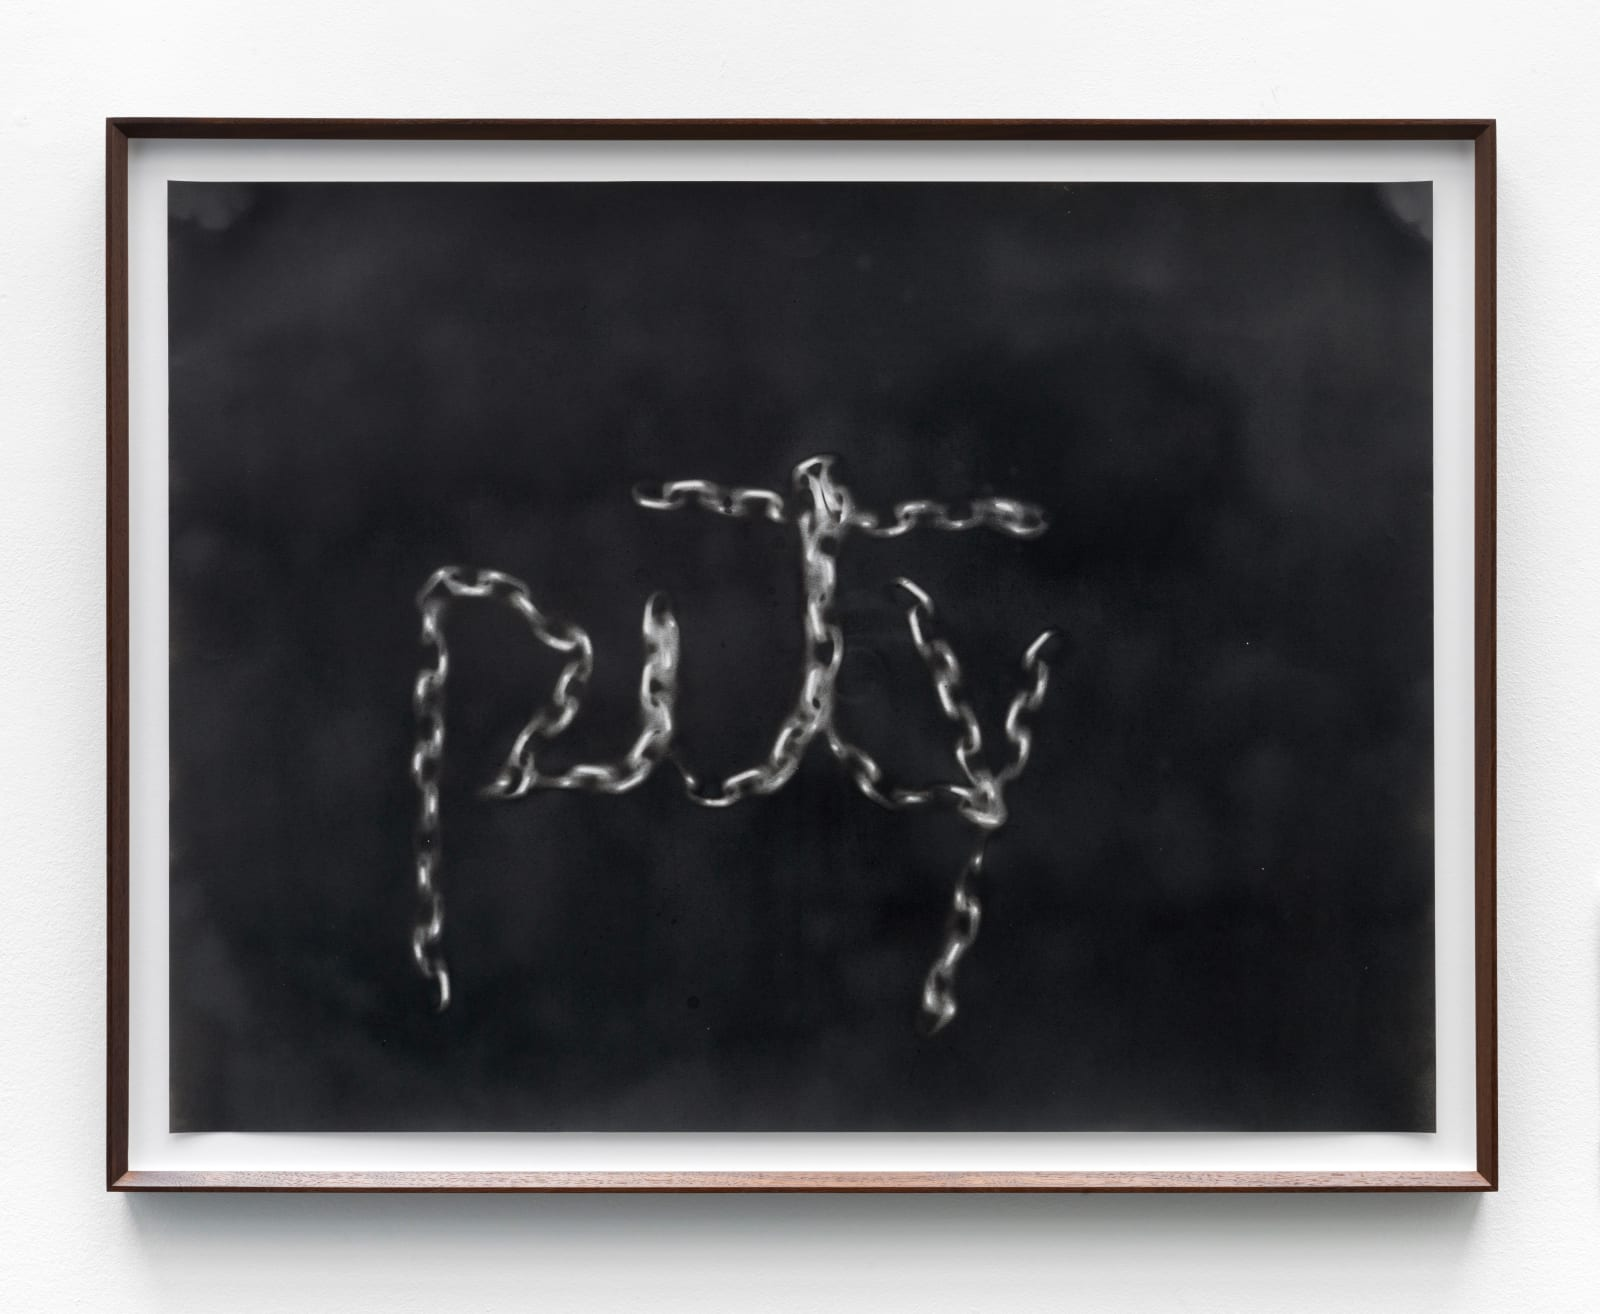 Monica Bonvicini (b. 1965) Pity, 2013 spray paint on Fabriano paper 23 5/8 x 32 1/4 in (60 x 82 cm) framed: 27 x 35 1/8 x 1 5/8 in (68.5 x 89 x 4 cm) (BON7750)